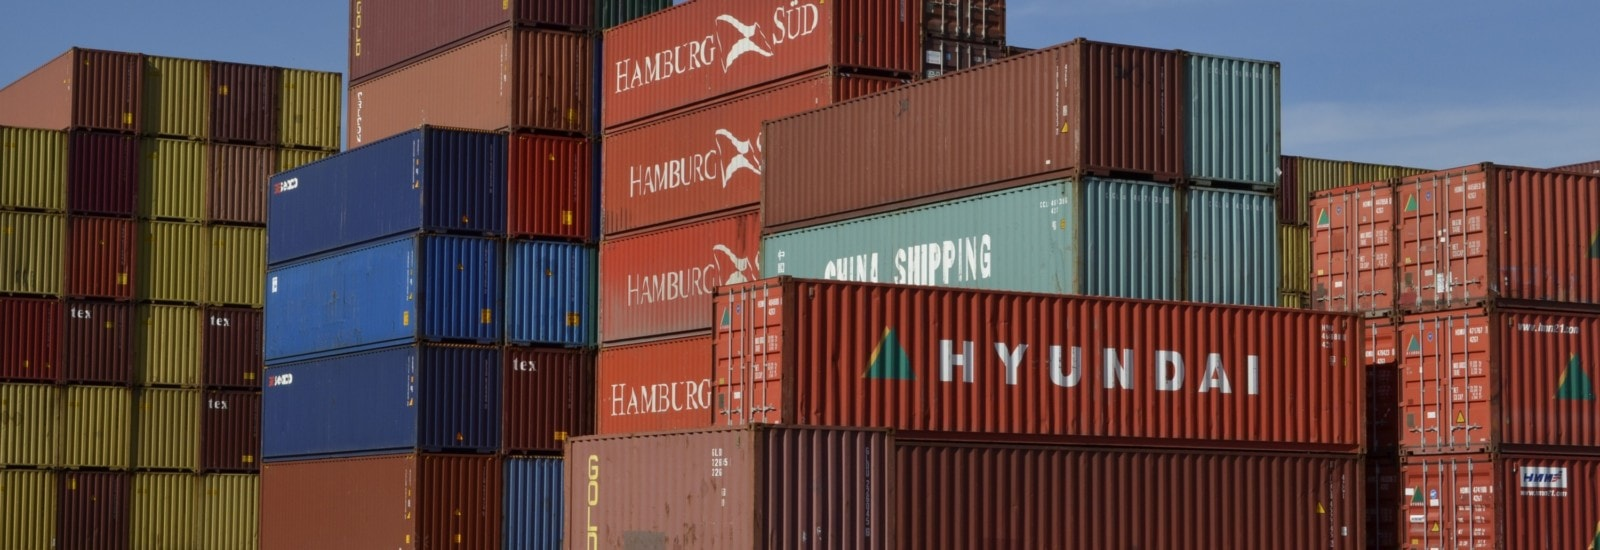 containers-haven